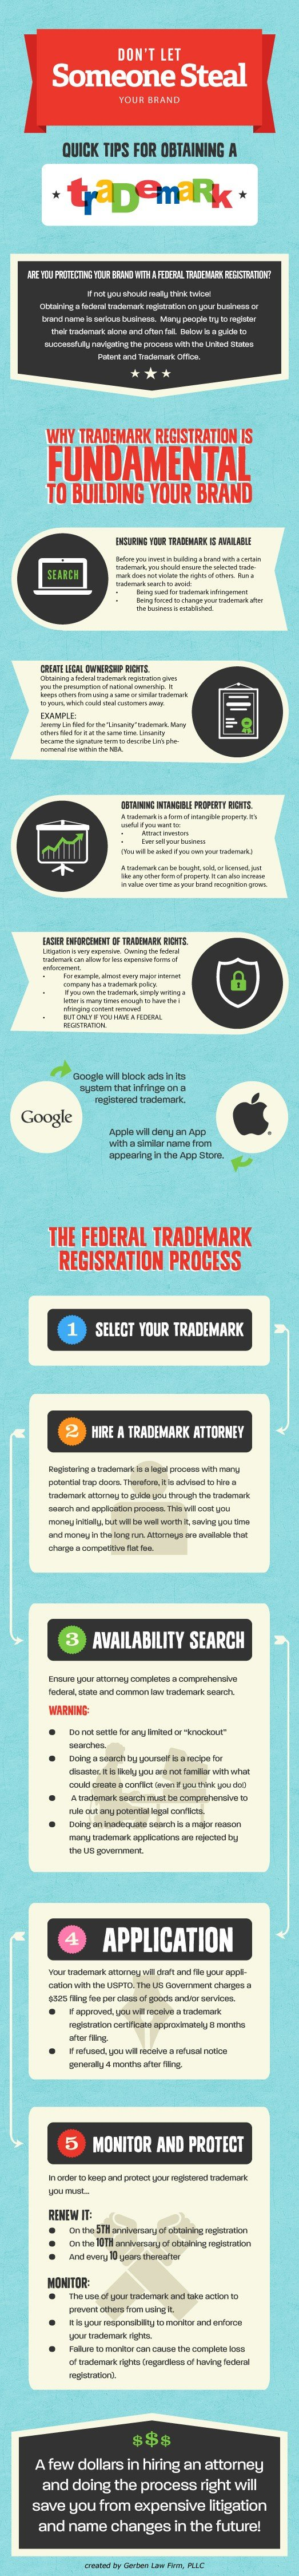 Tips for Obtaining a Trademark